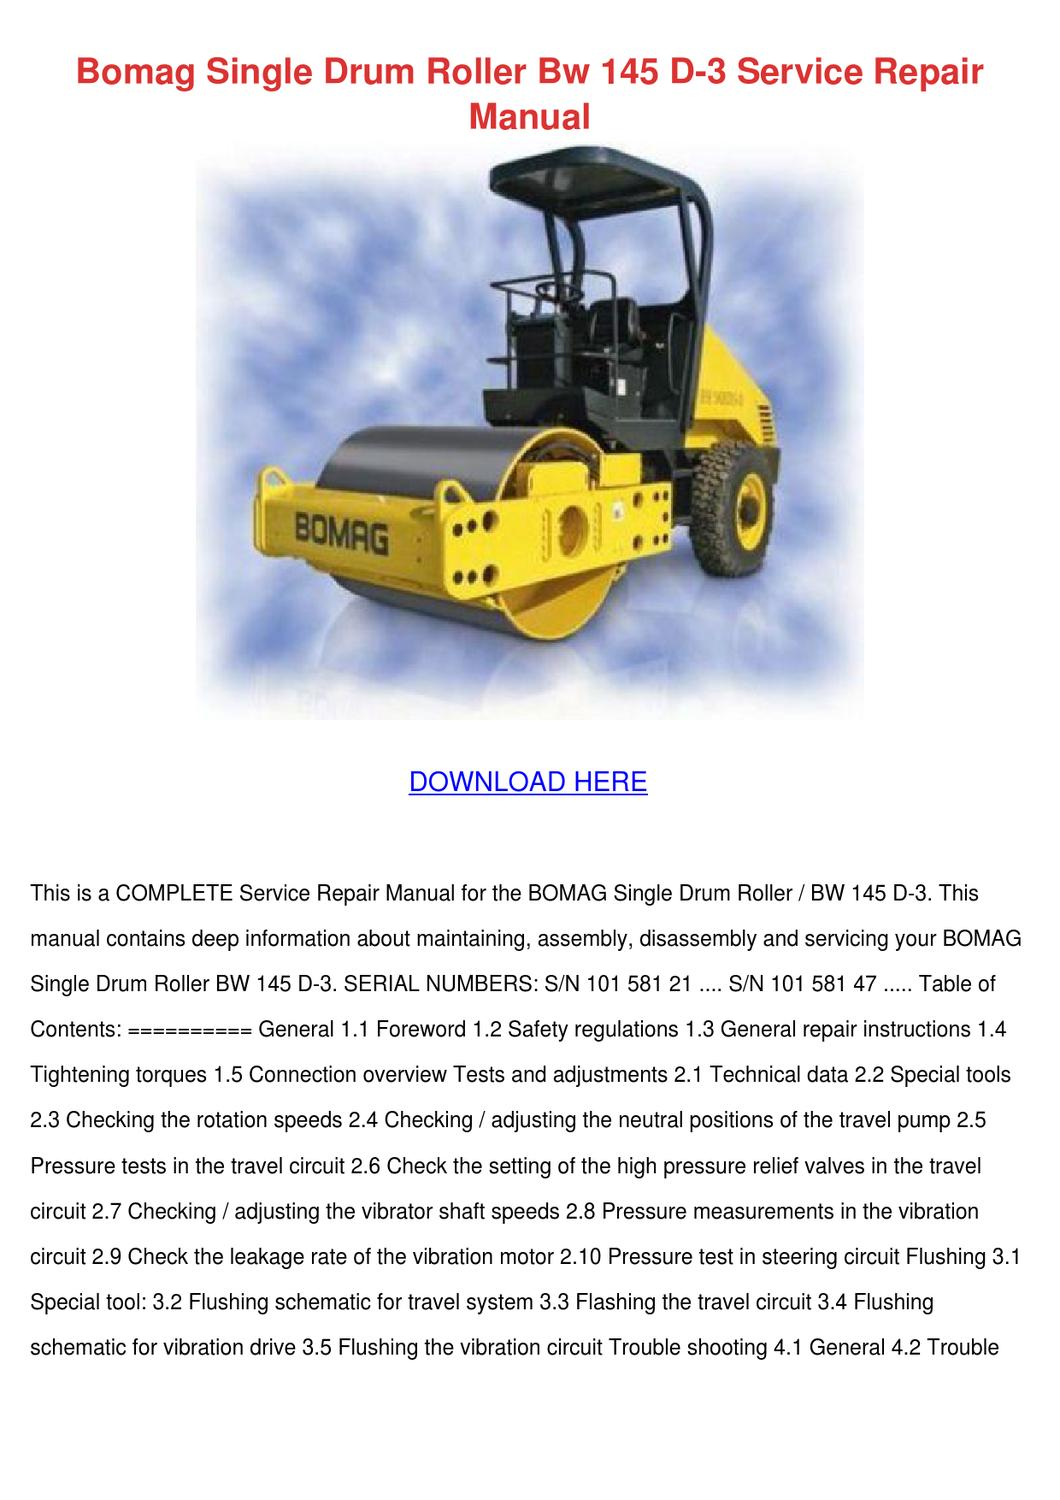 Bomag Single Drum Roller Bw 145 D 3 Service R by HeidiGarris - issuu